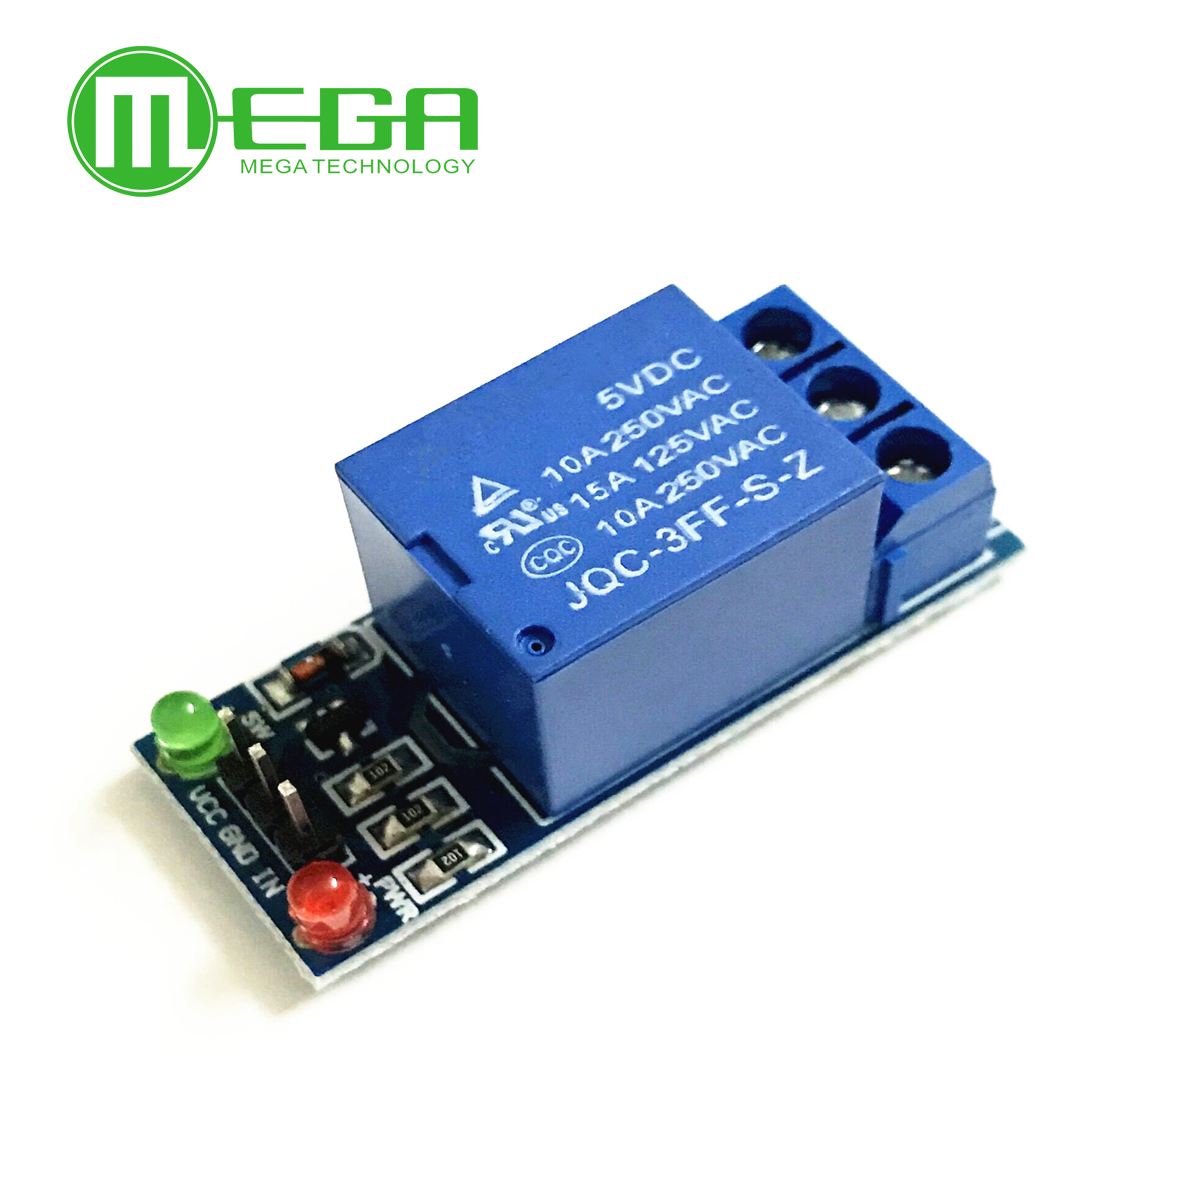 1pcs-1-channel-5v-relay-module-low-level-for-scm-household-appliance-control-for-font-b-arduino-b-font